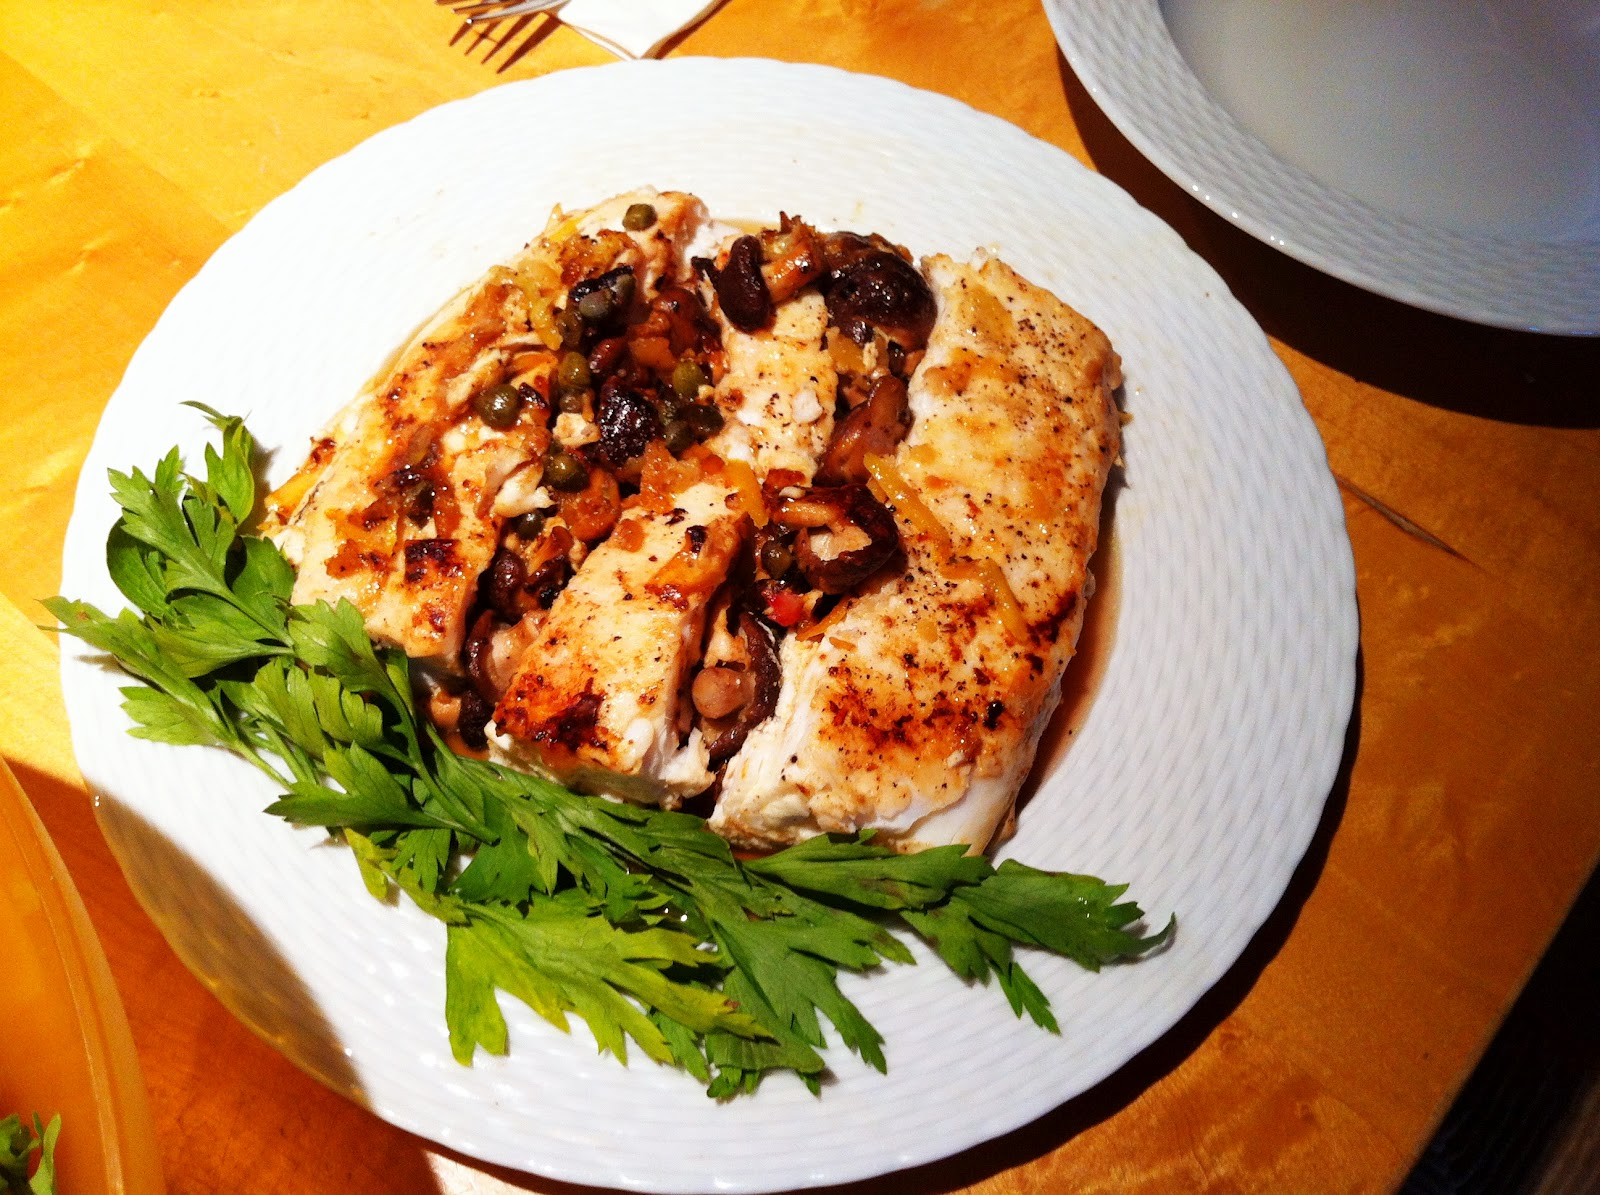 Good Looking Home Cooking: Seared Halibut with Shiitake ...